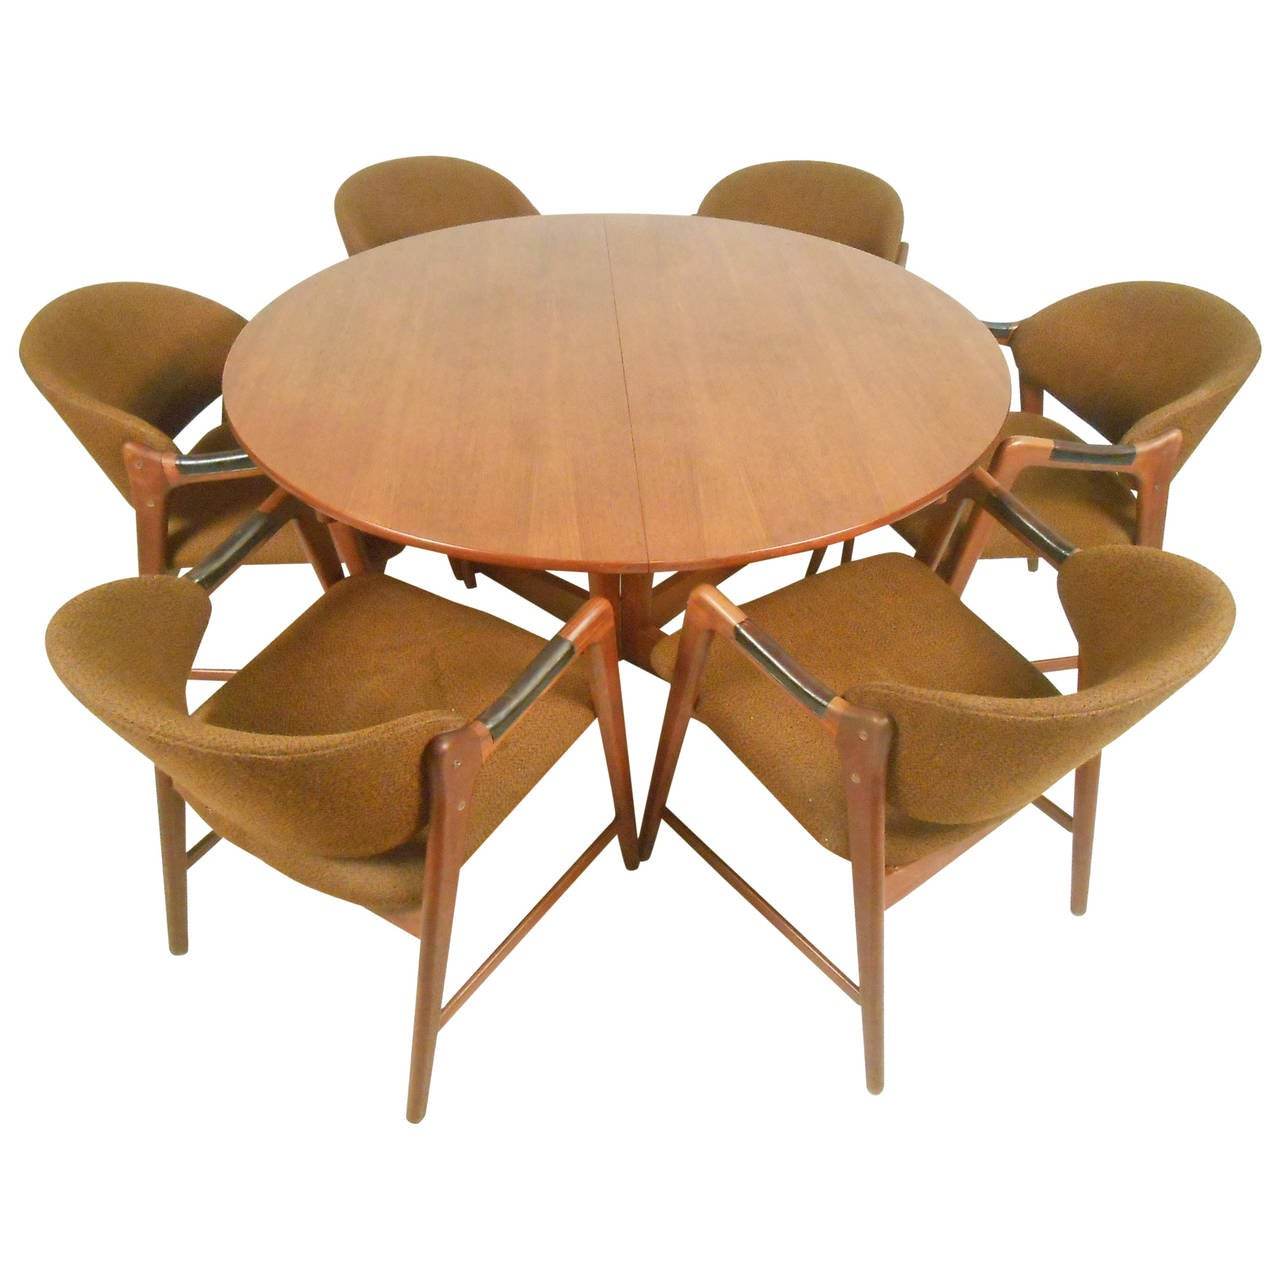 Mid century modern teak dining set with westnofa chairs for Designer dining chairs sale